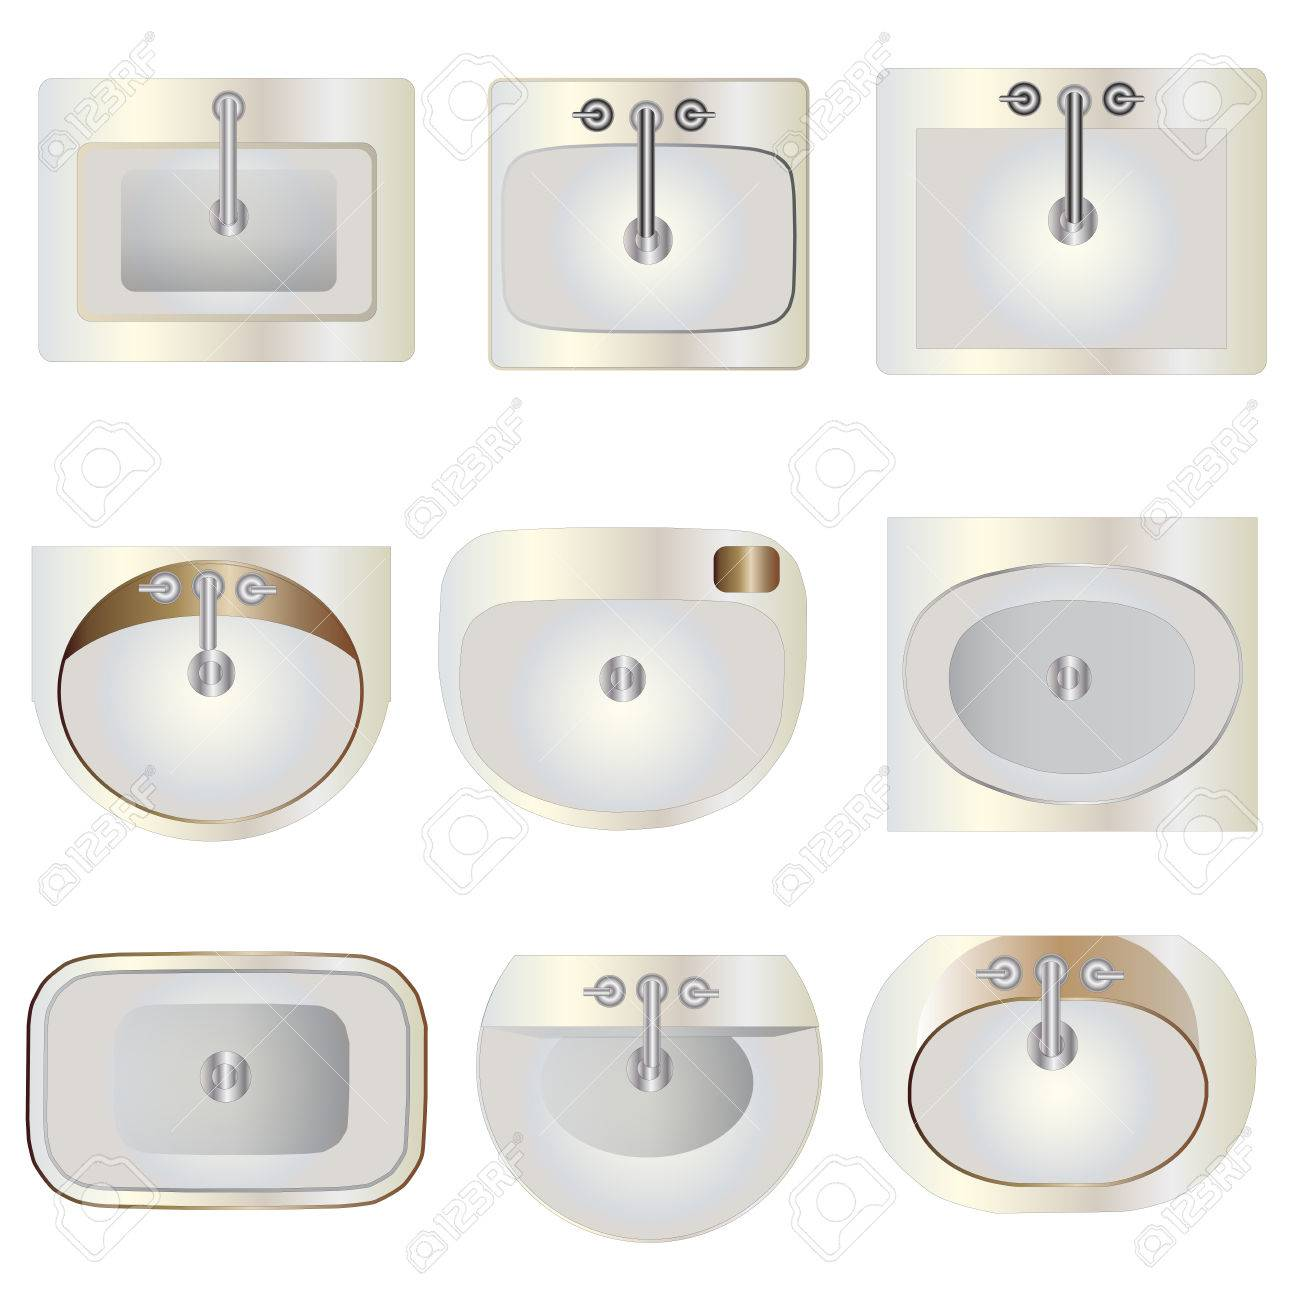 Waschbecken Clipart Lavabo Clipart Nettys Cards Freebies With Lavabo Clipart Trendy